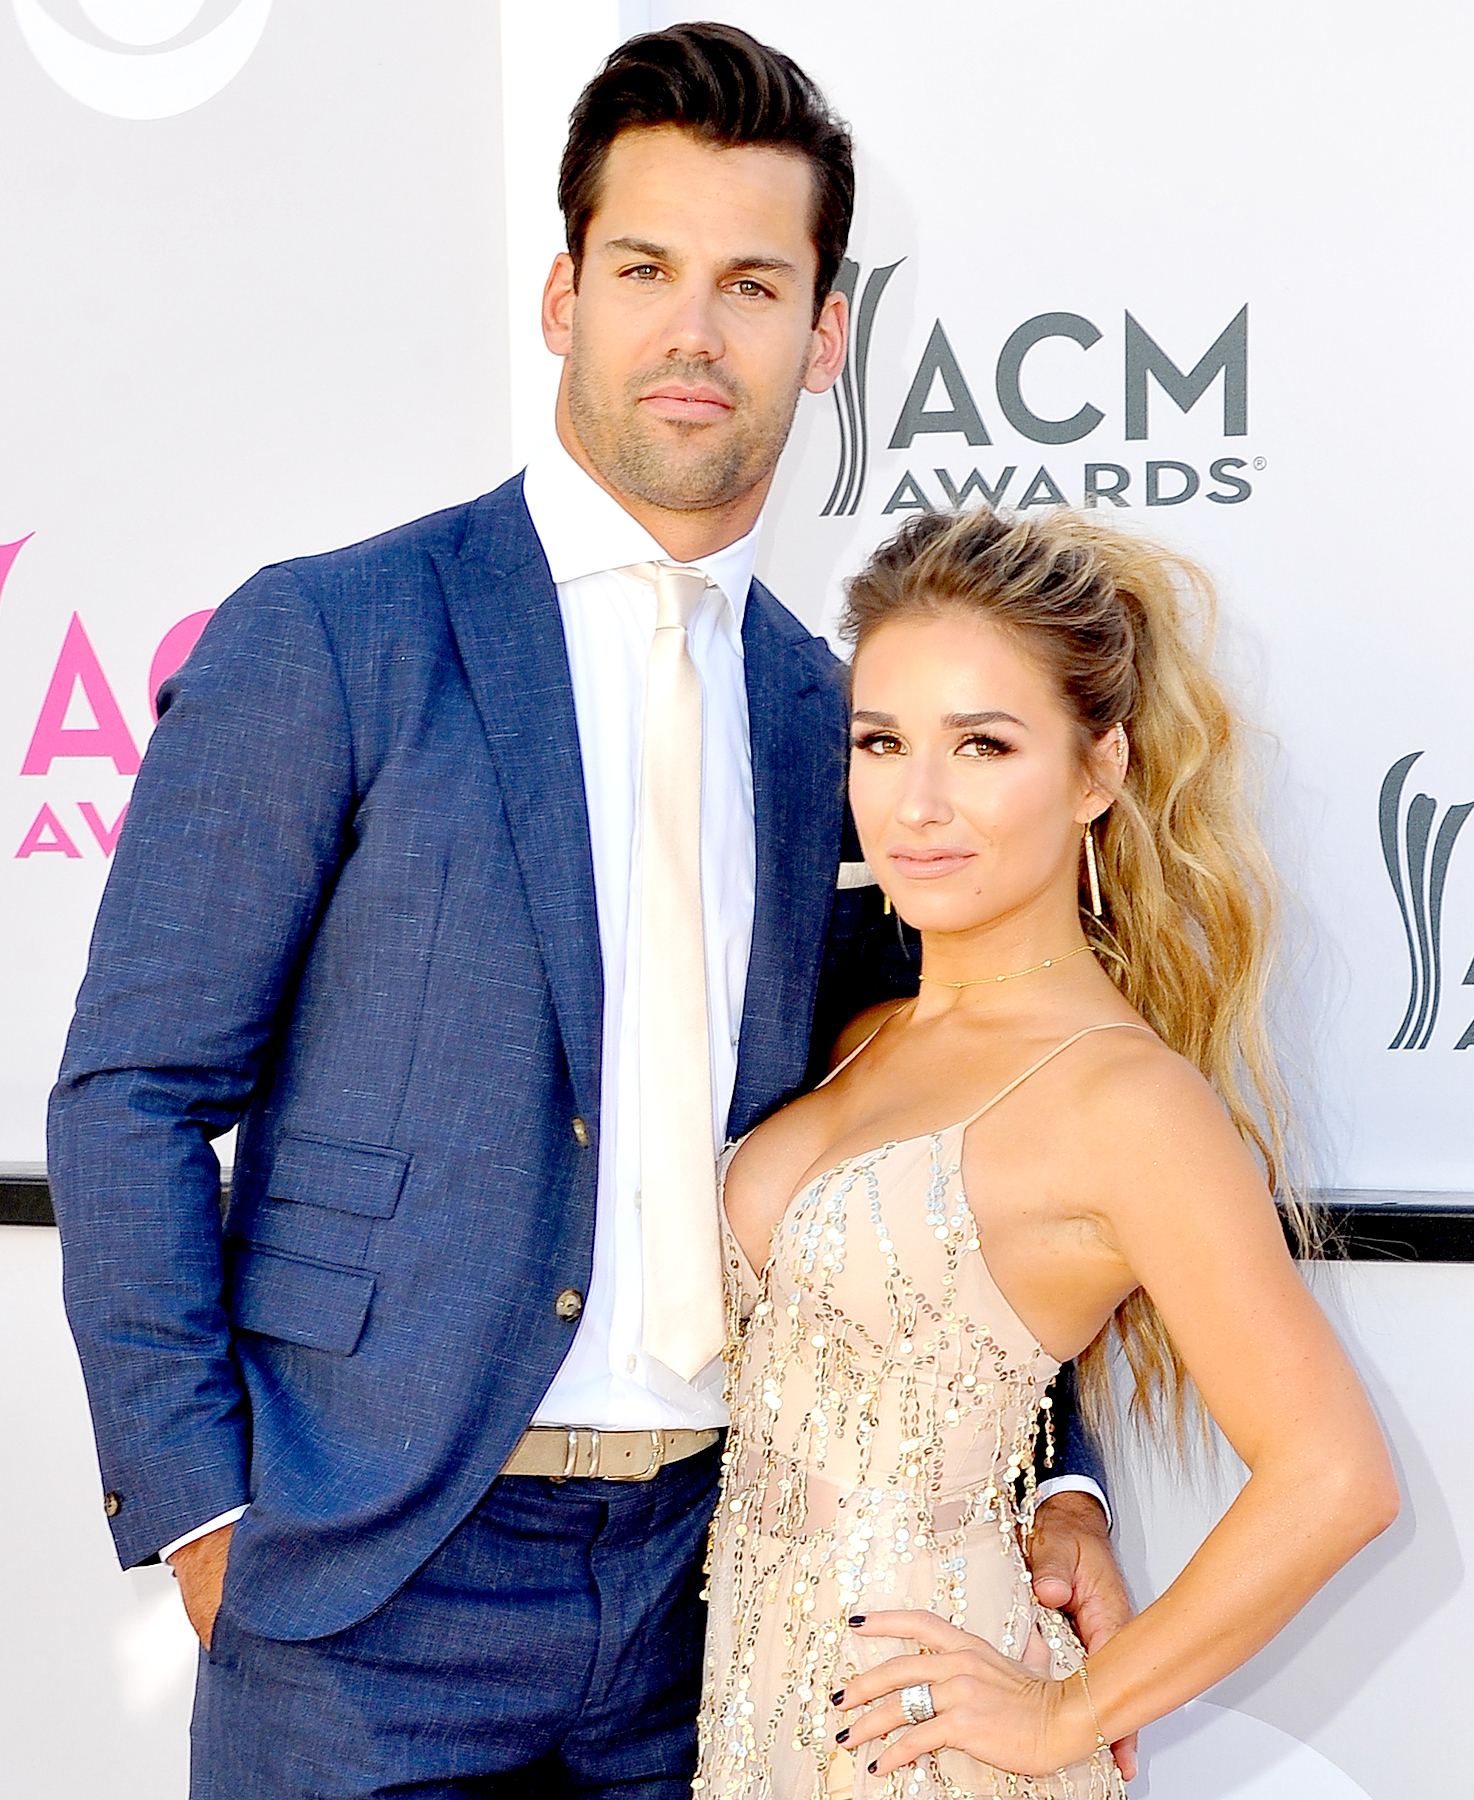 NFL Player Eric Decker and Jessie James Decker arrive at the 52nd Academy Of Country Music Awards on April 2, 2017 in Las Vegas, Nevada.